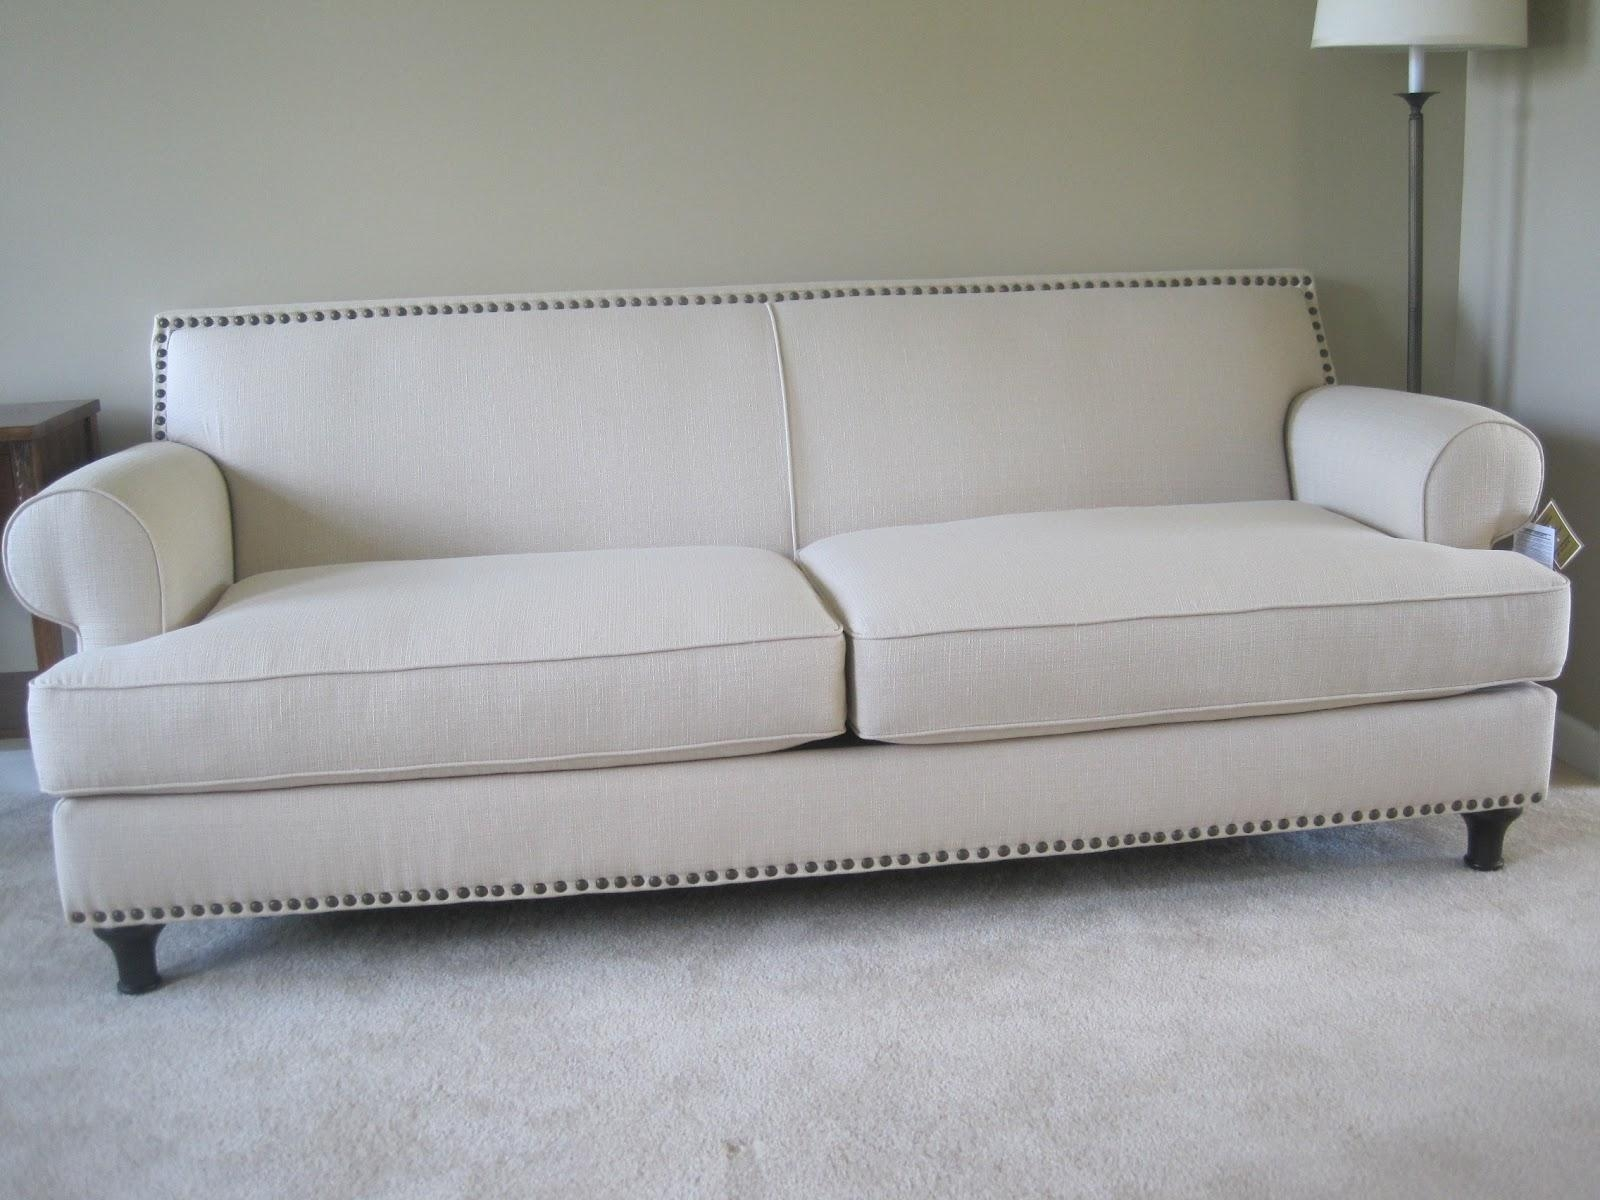 Designed To Dwell: So Fa Ortunate! Intended For Pier One Sleeper Sofas (View 9 of 20)